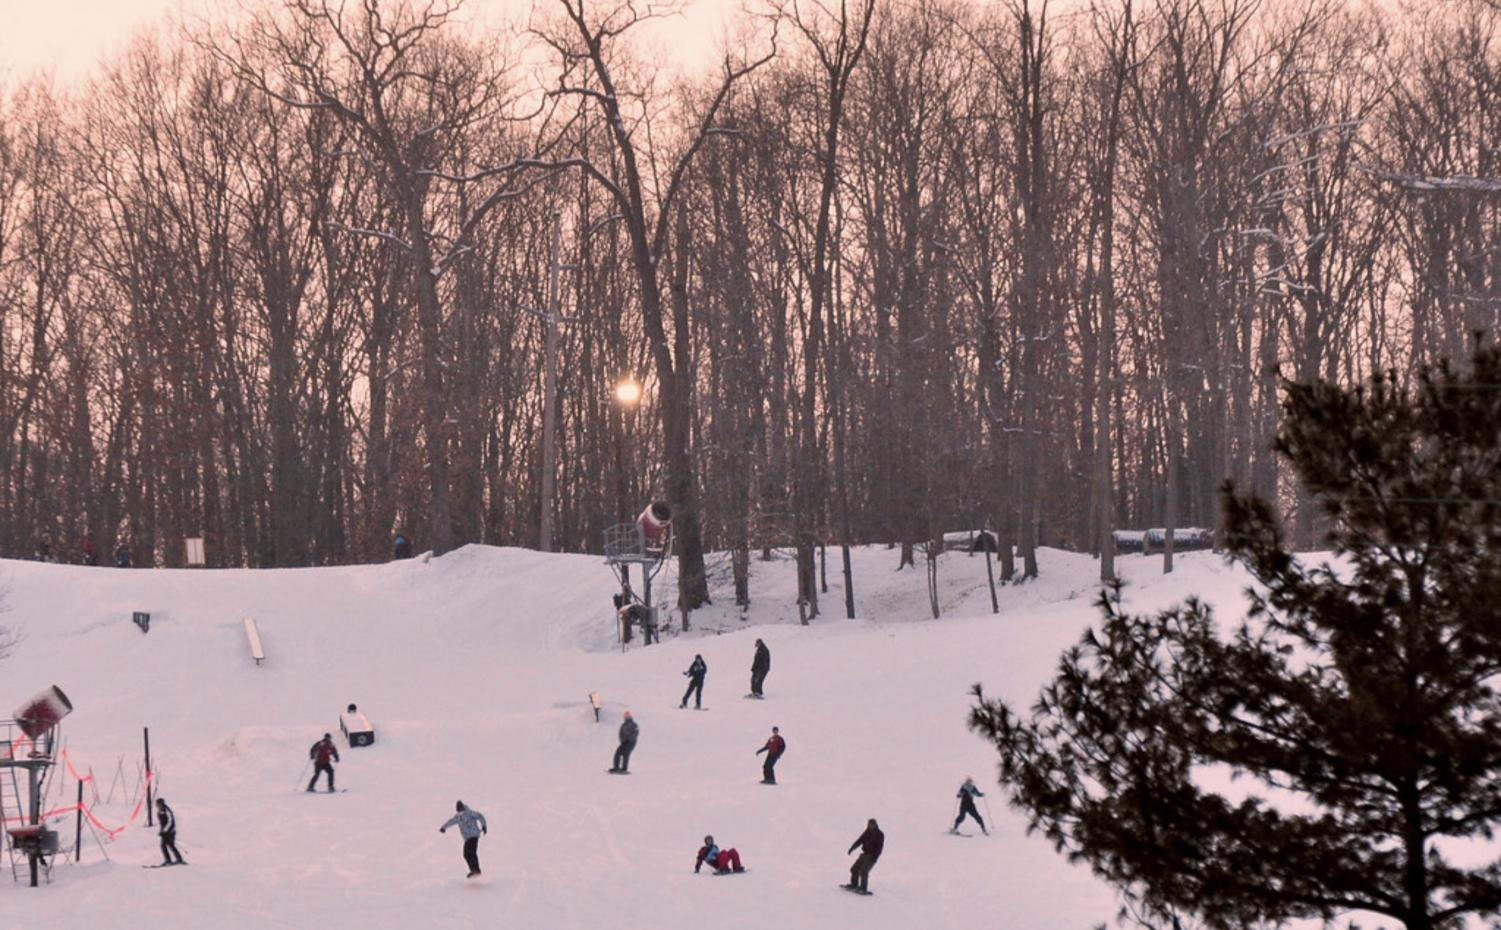 Skiers and snowboarders enjoy an afternoon of winter fun at nearby Boston Mills and Brandywine.